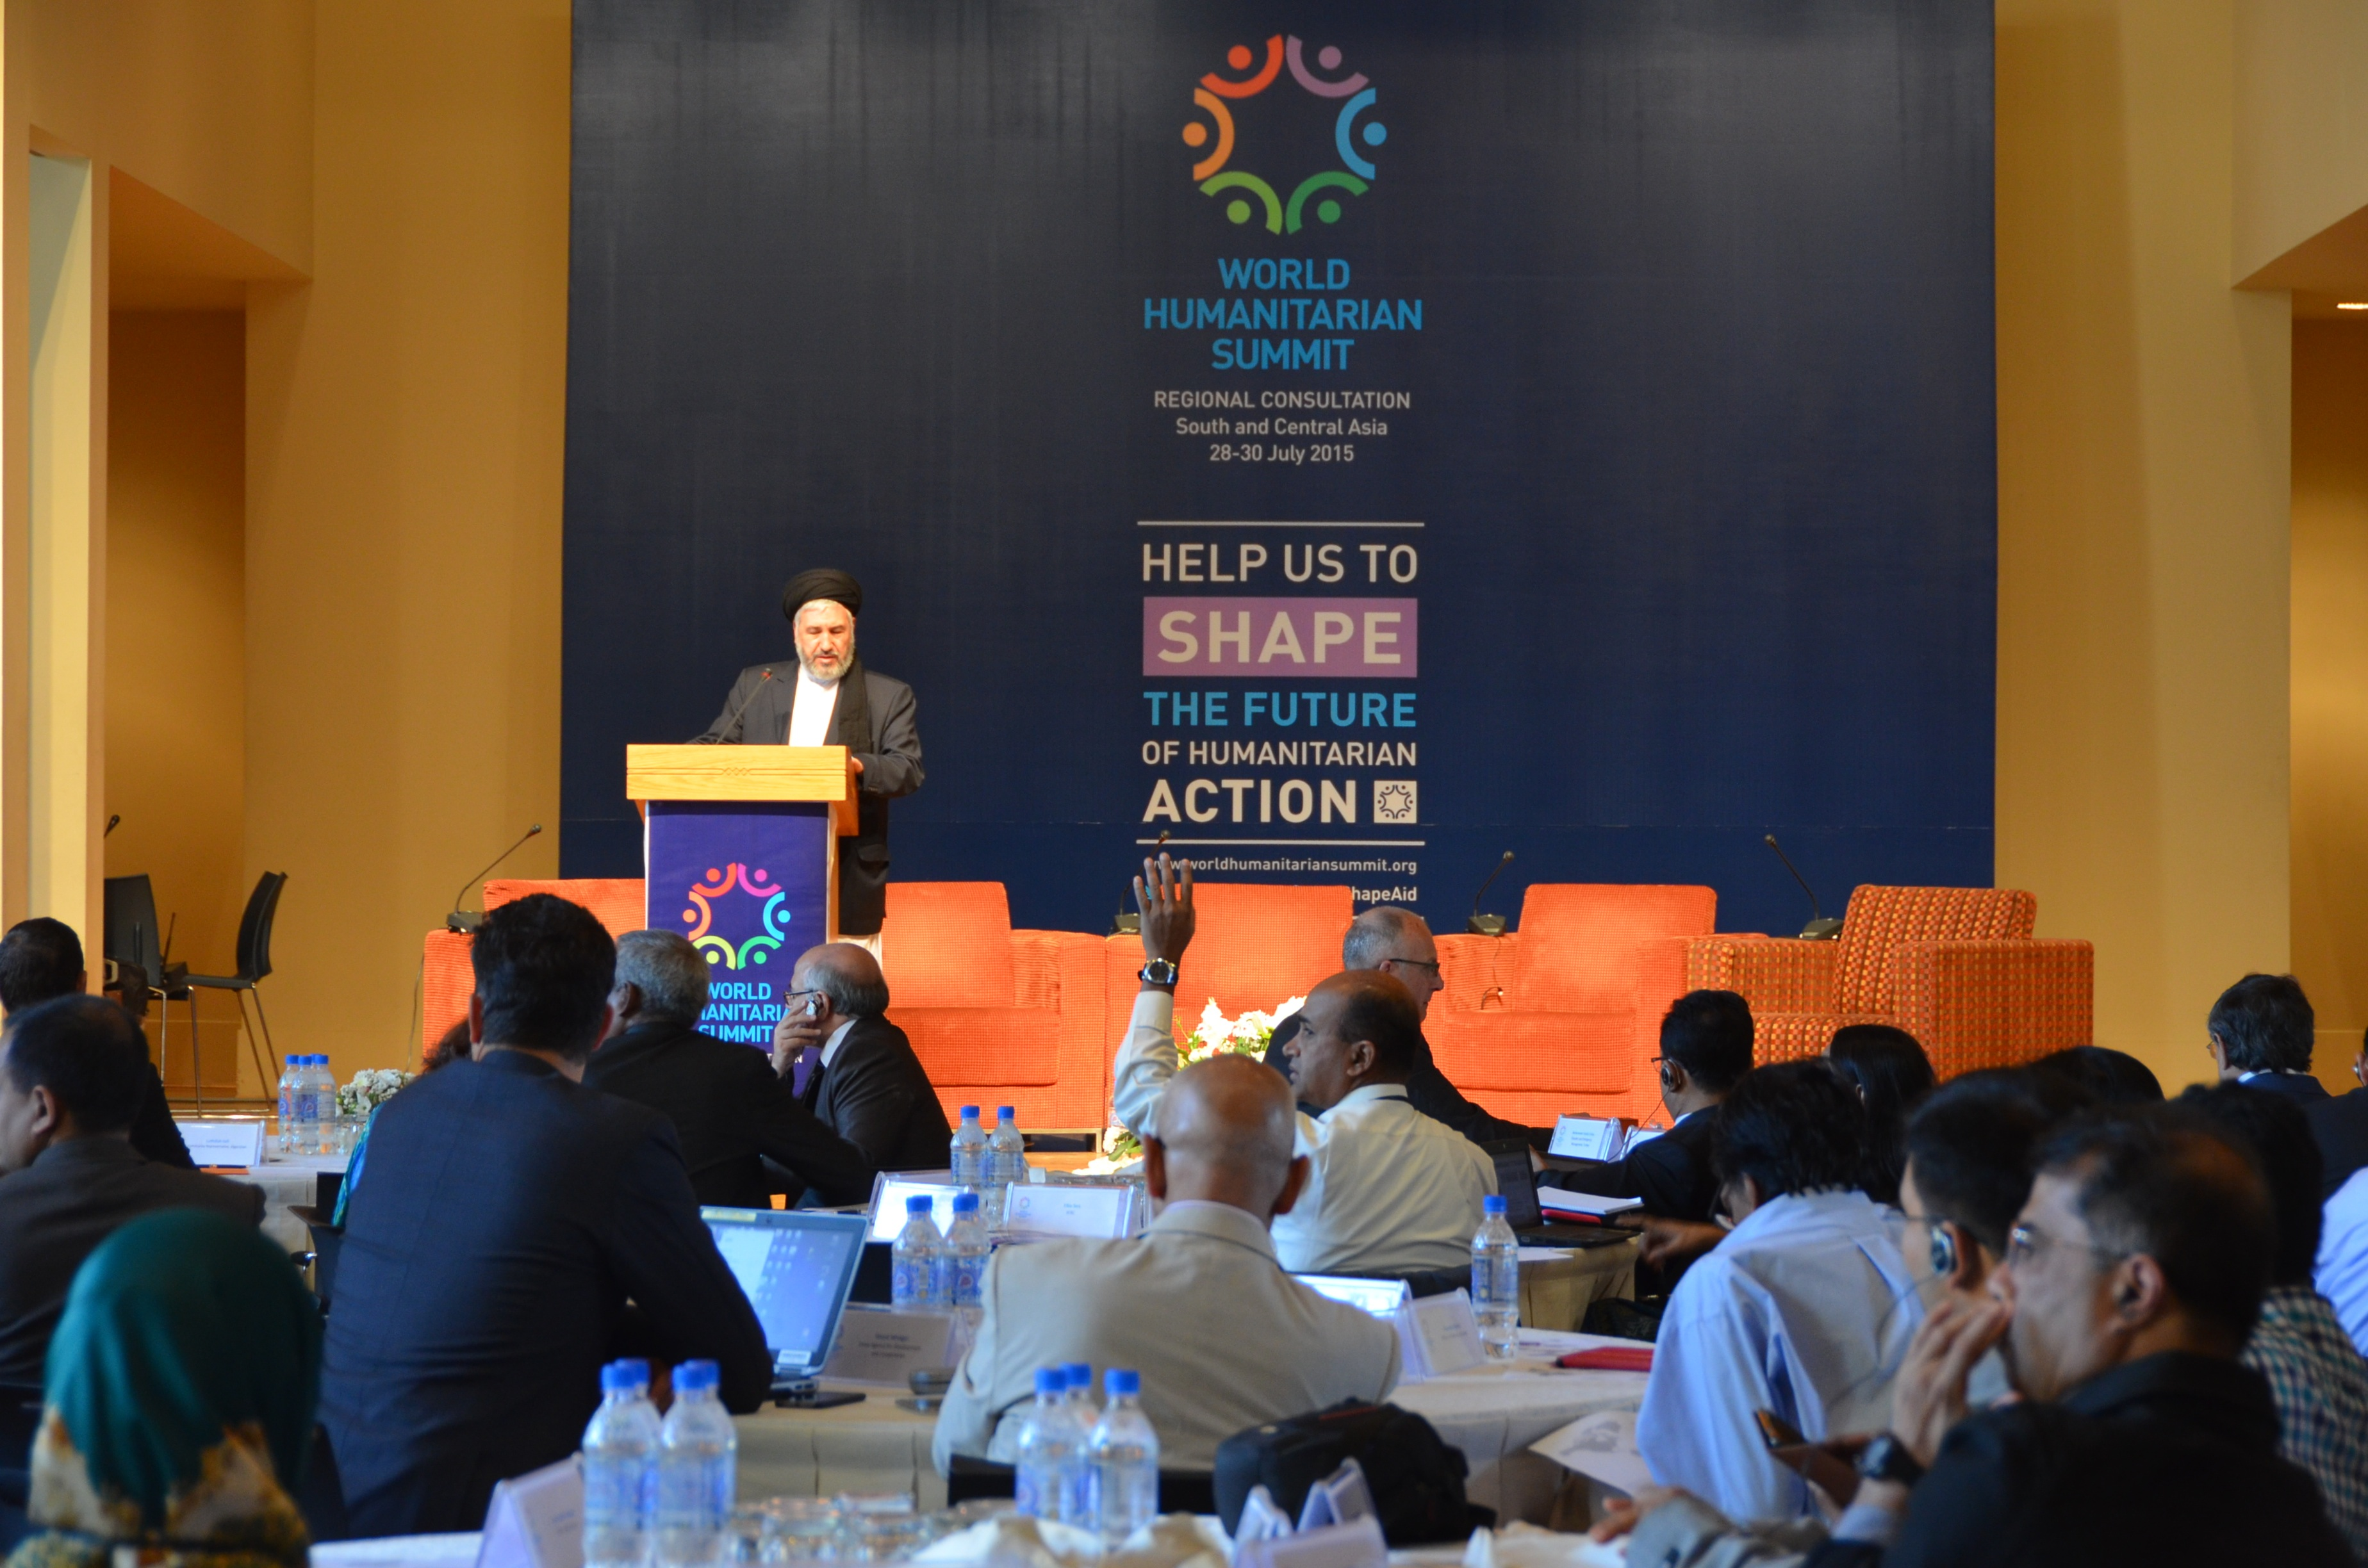 The Afghan minister for refugees and repatration, Sayed Hossein Alimi Balkh, addresses participants at the World Humanitarian Summit regional consultation for South and Central Asia in the Tajik capital Dushanbe in July 2015.